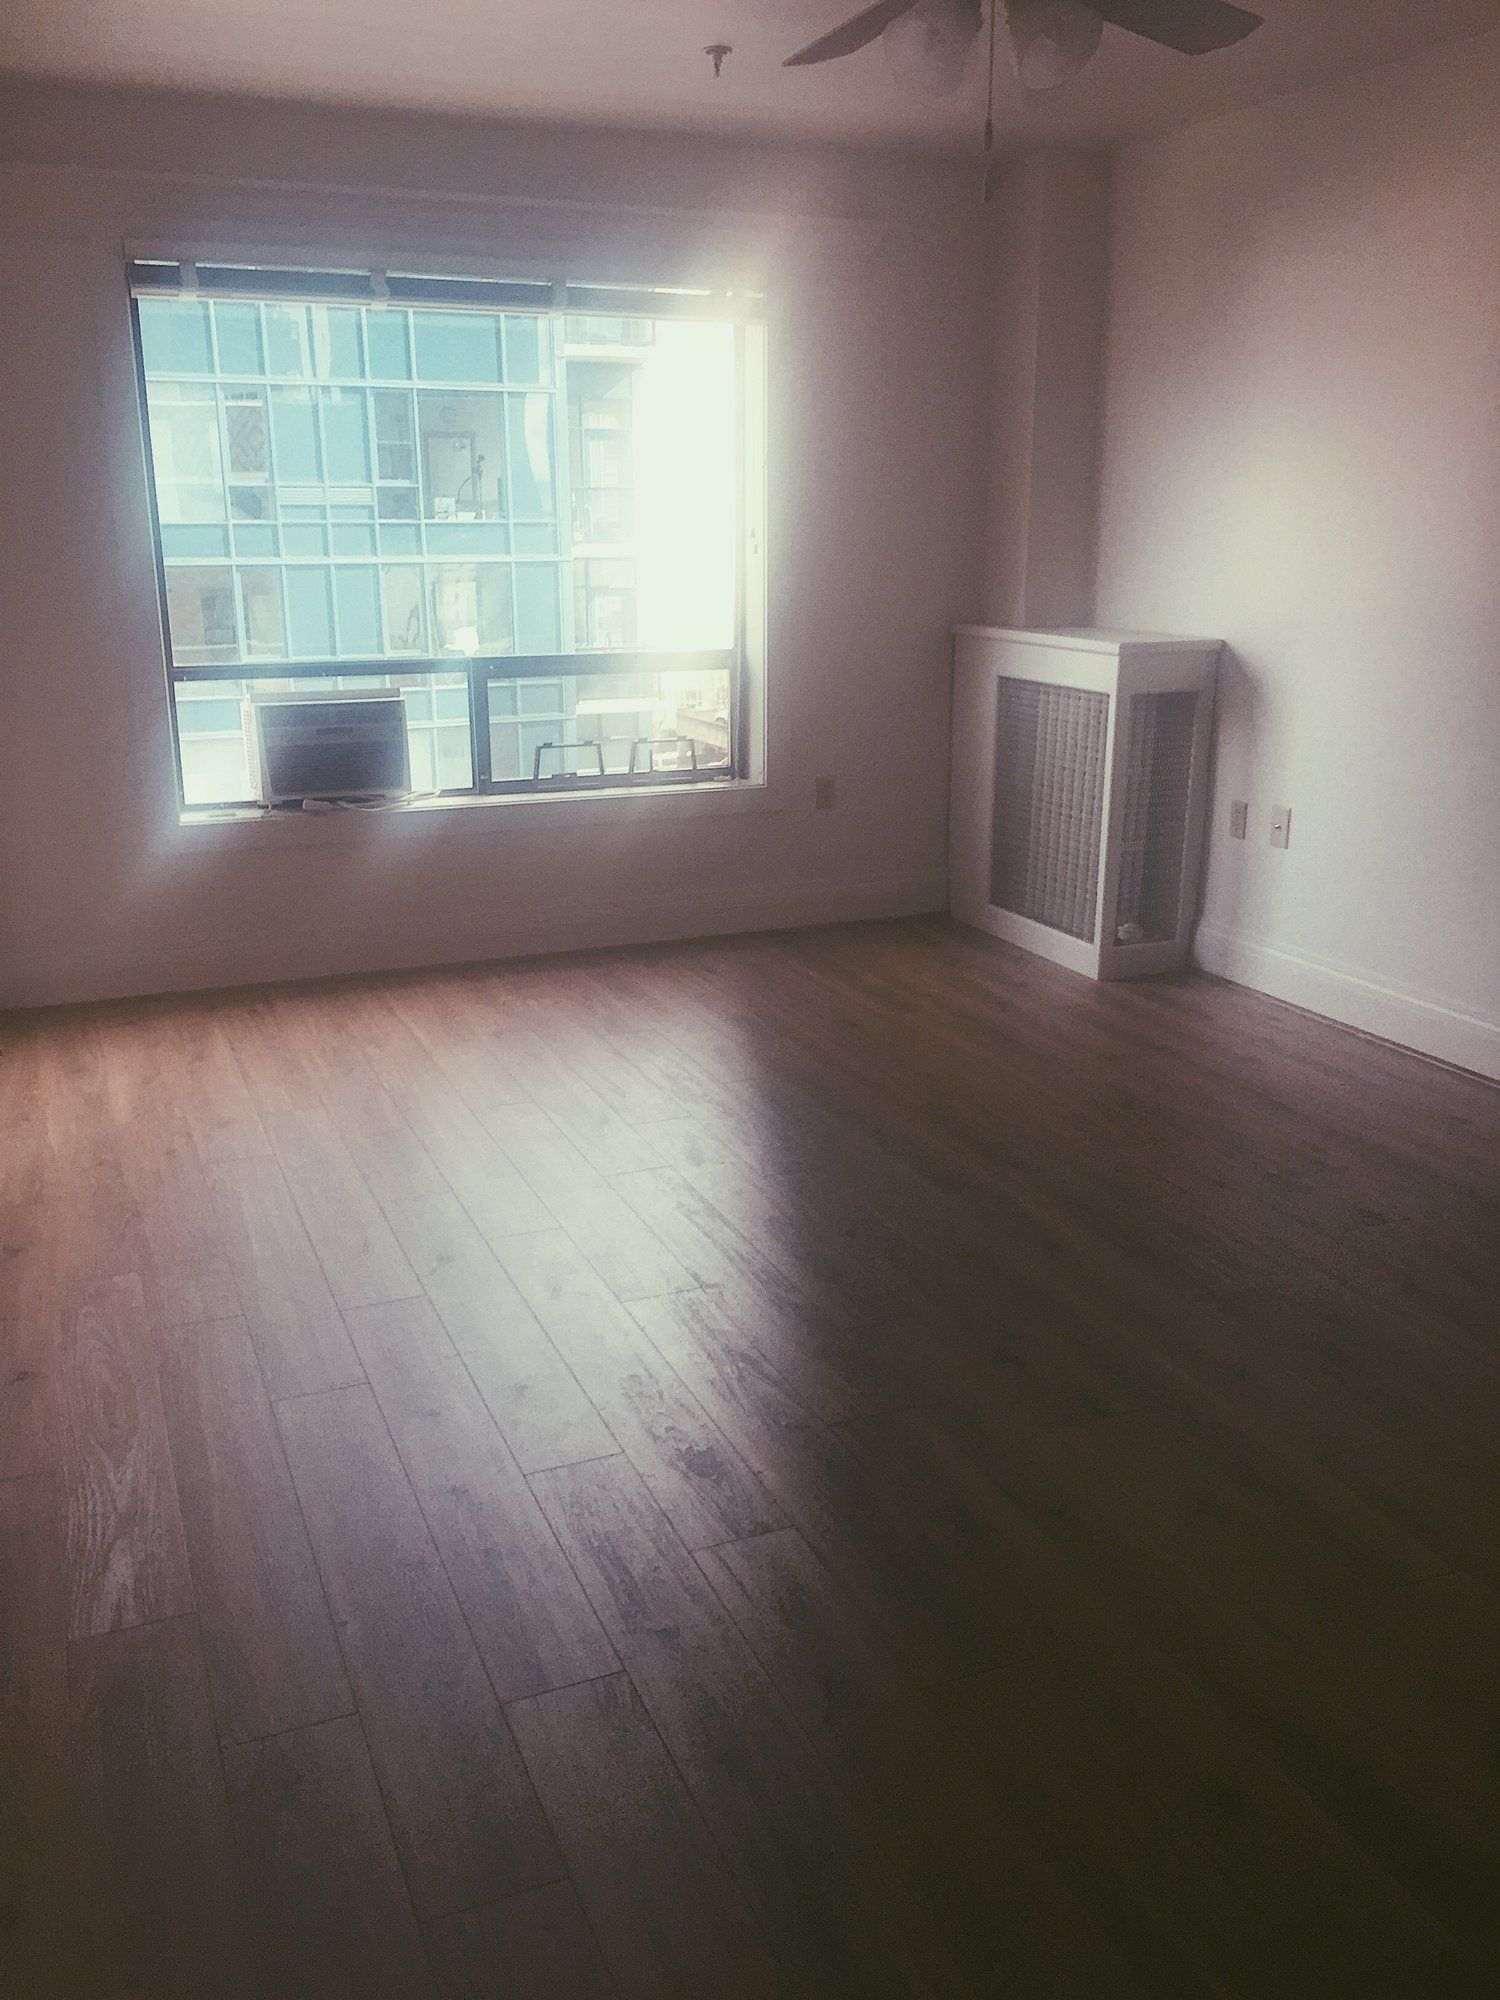 Before & After My Studio Apartment in Downtown Seattle